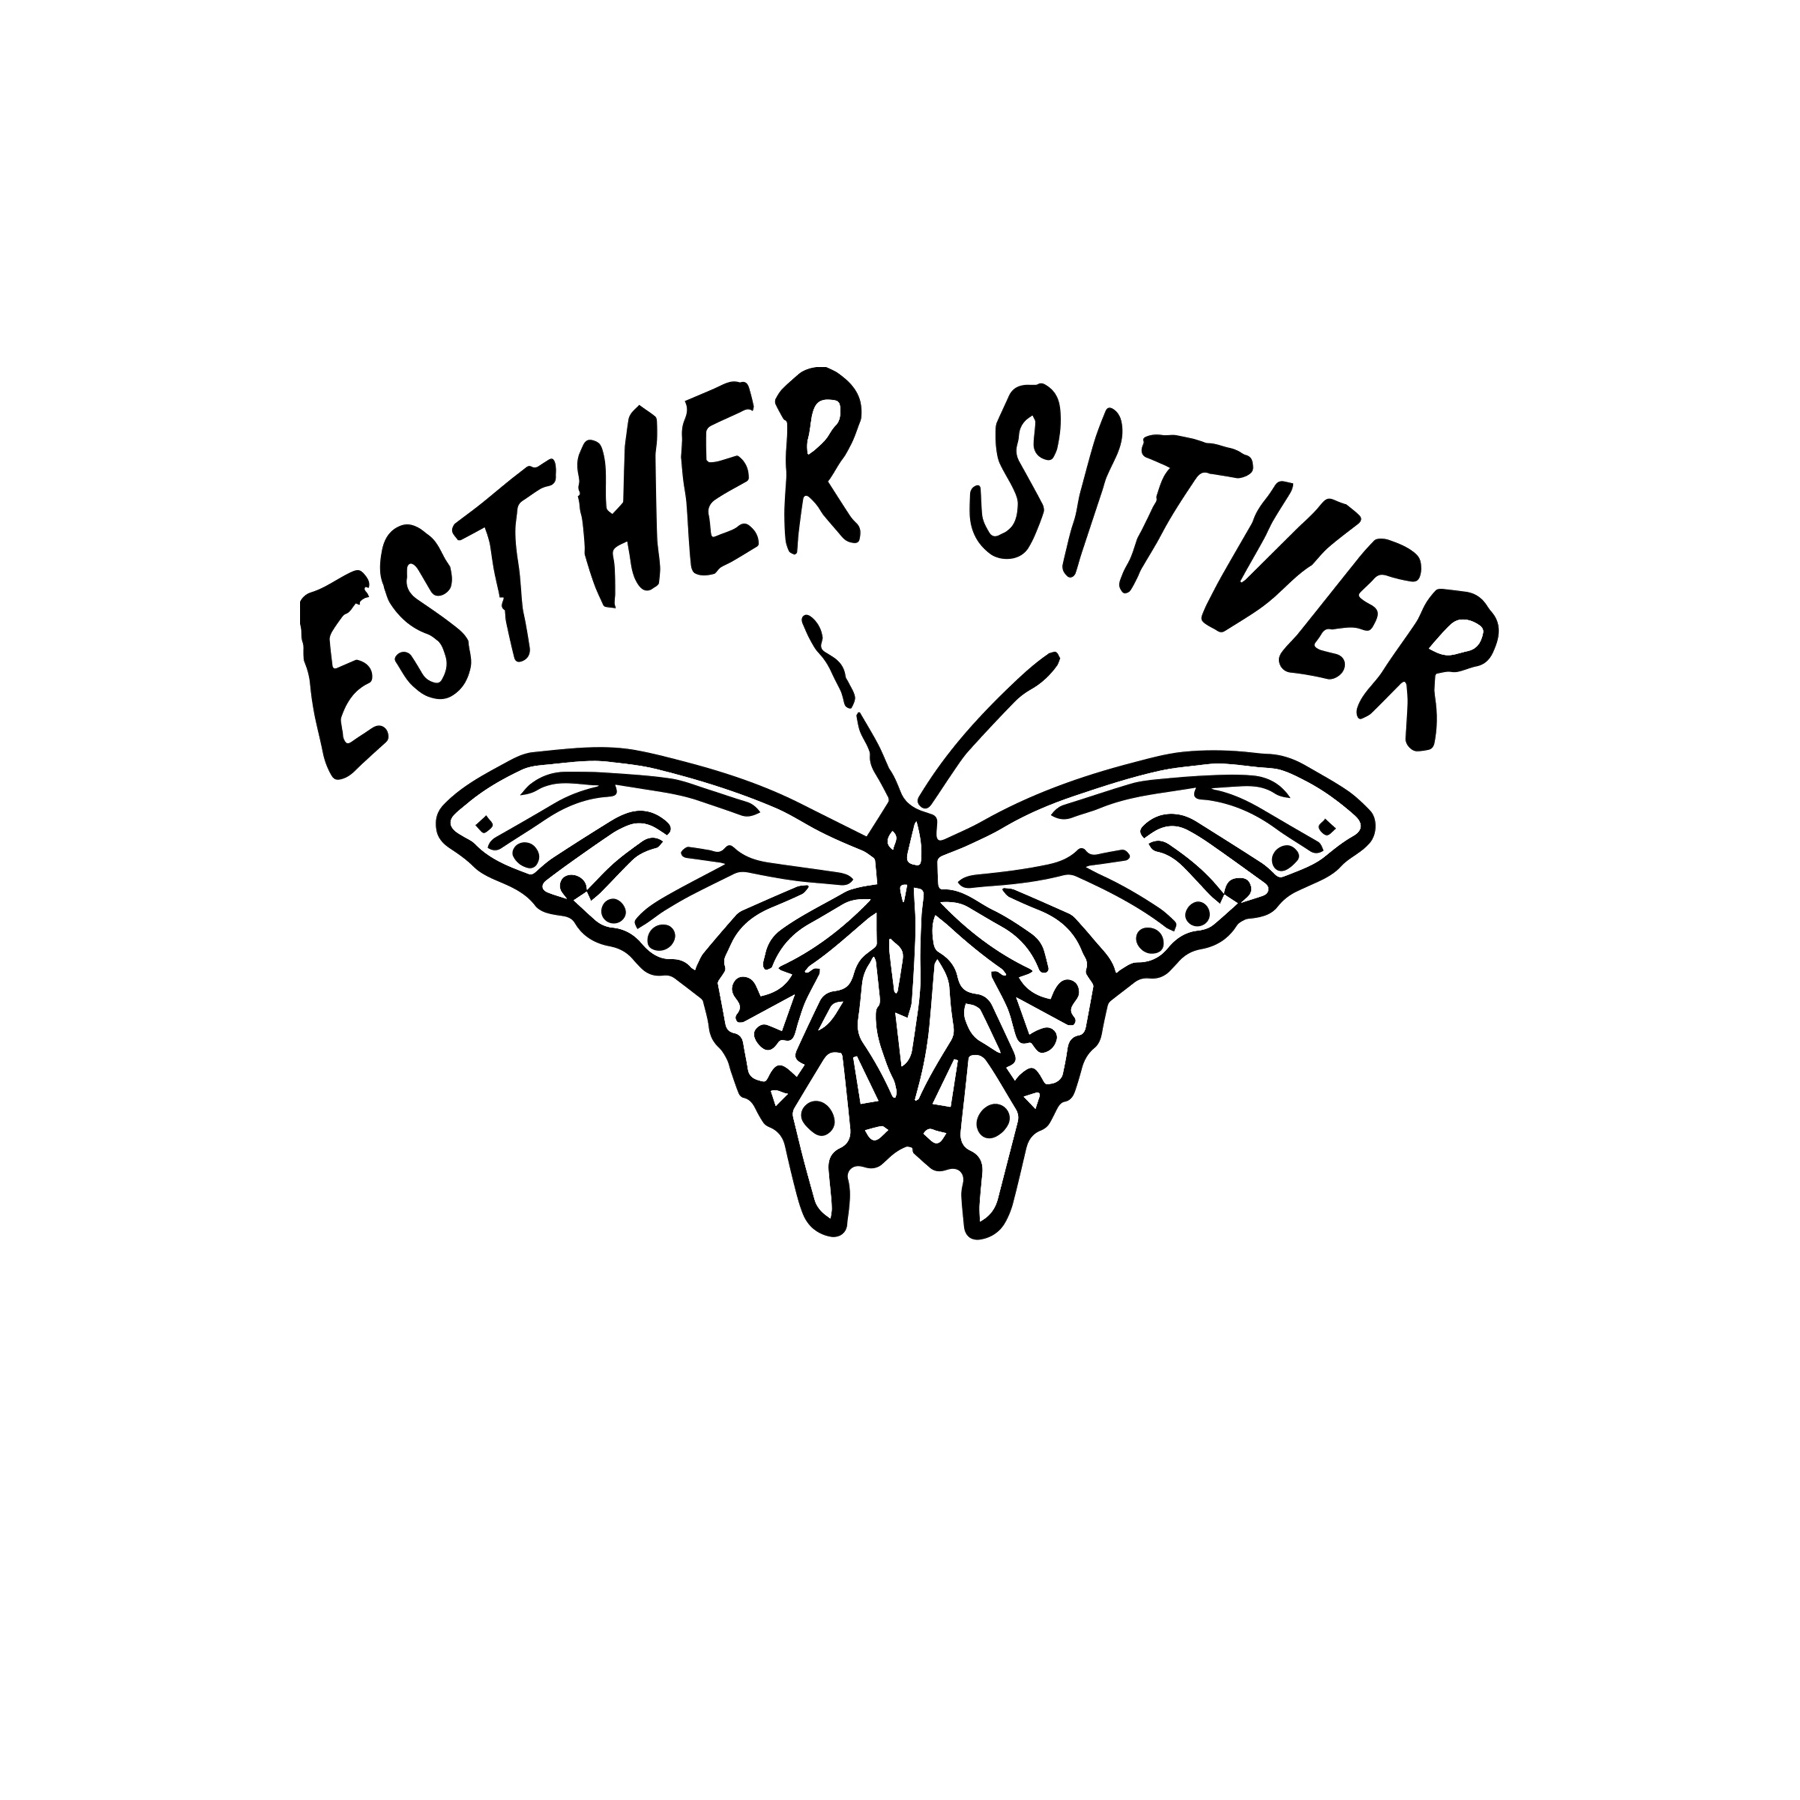 Esther Sitver logo.jpg